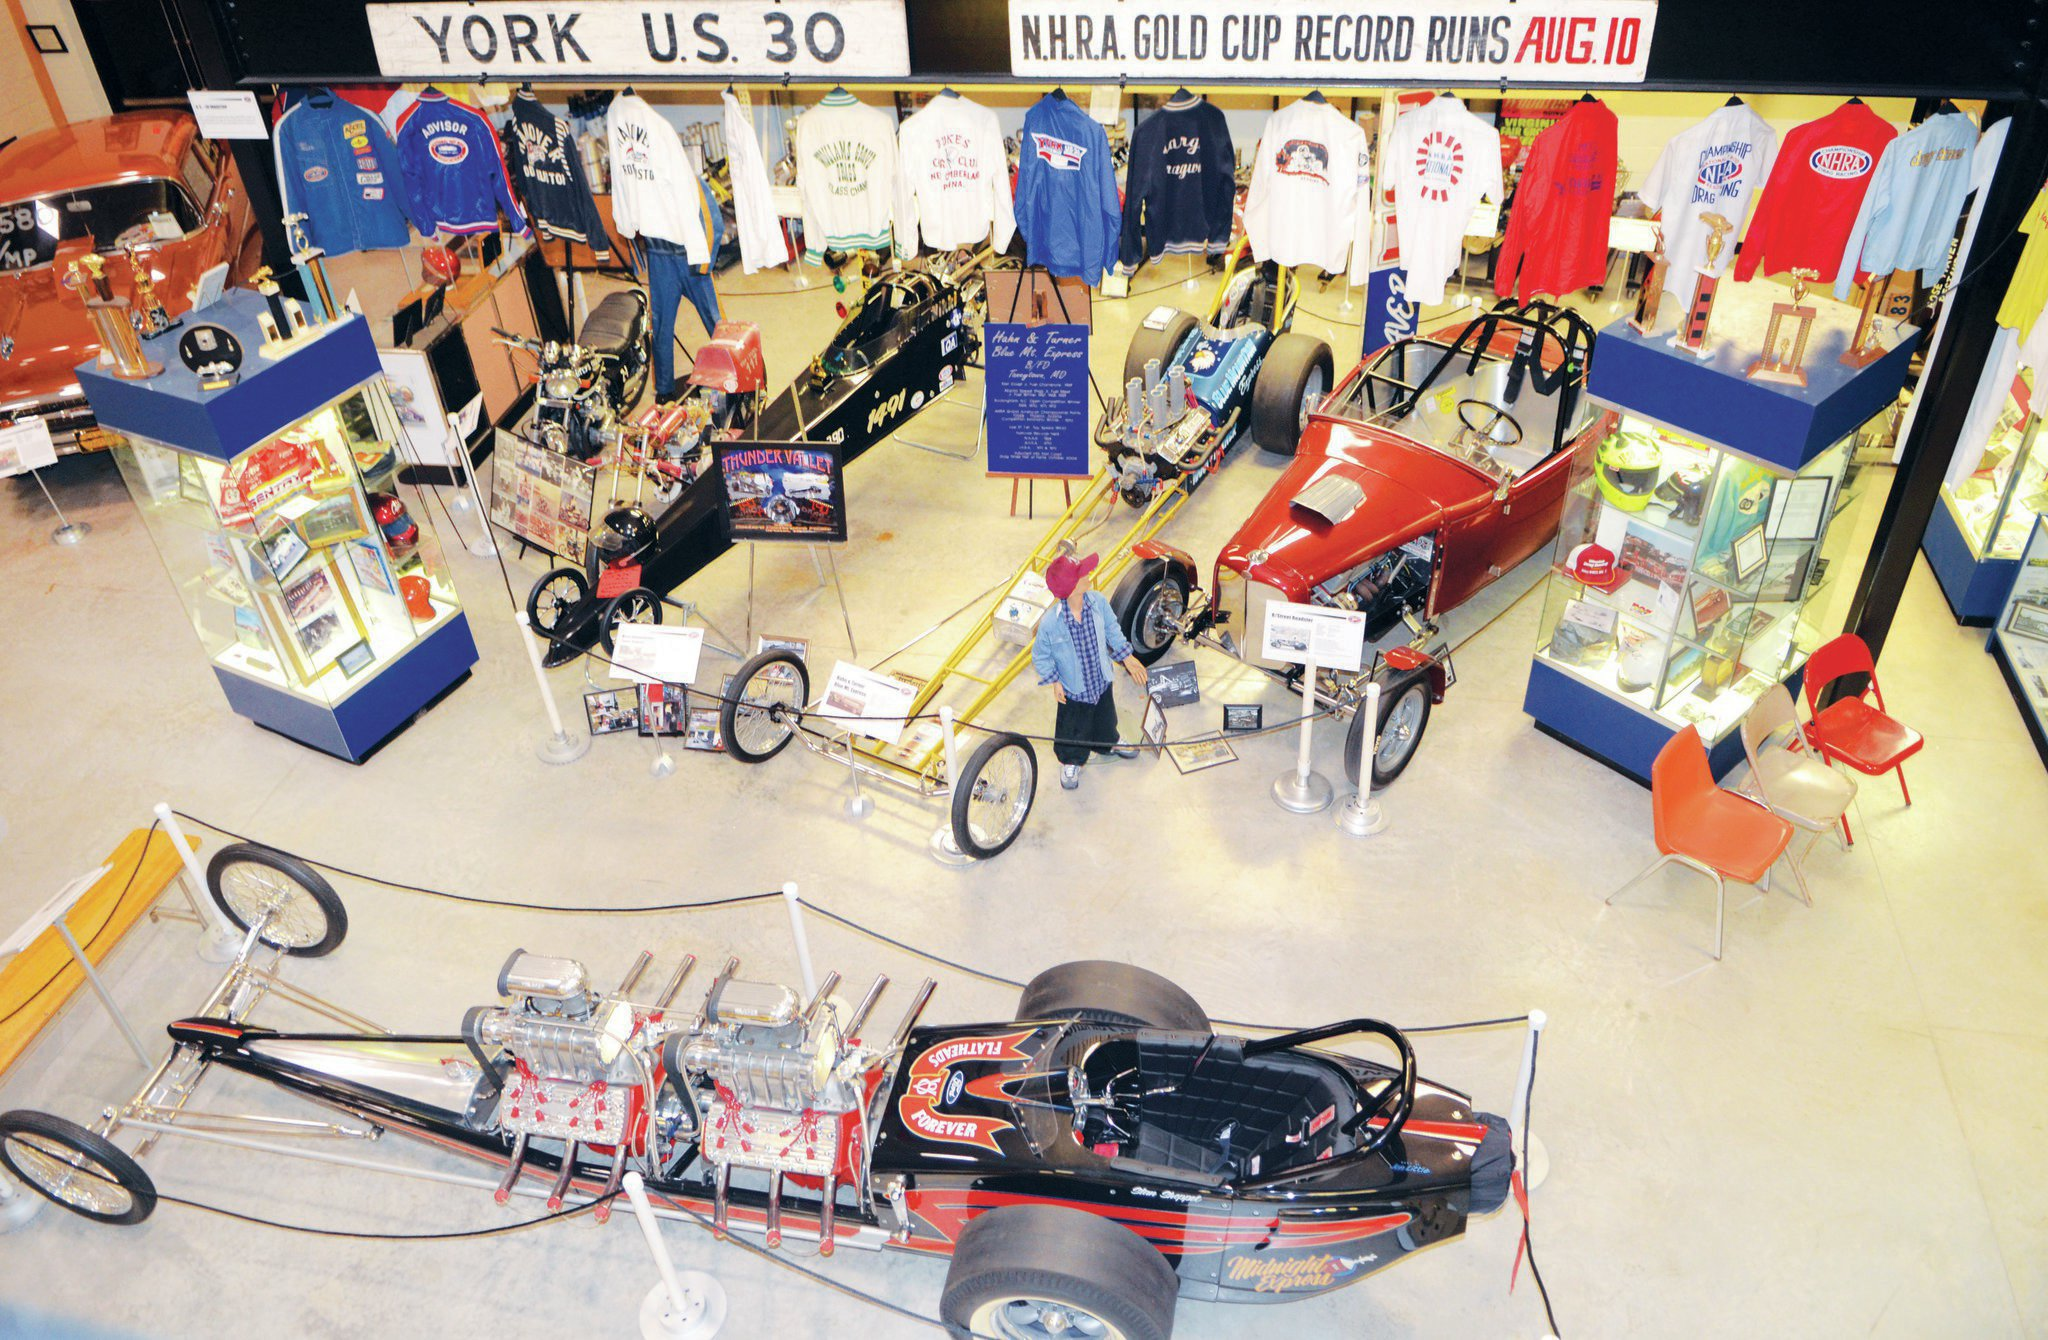 Looking down from the second level, this is a portion of the drag racing hall and engine room. The museum showcases numerous original and frankly quite priceless artifacts, including the world's largest collection of material from Altoona's board track, fastest of the '20s racing era.